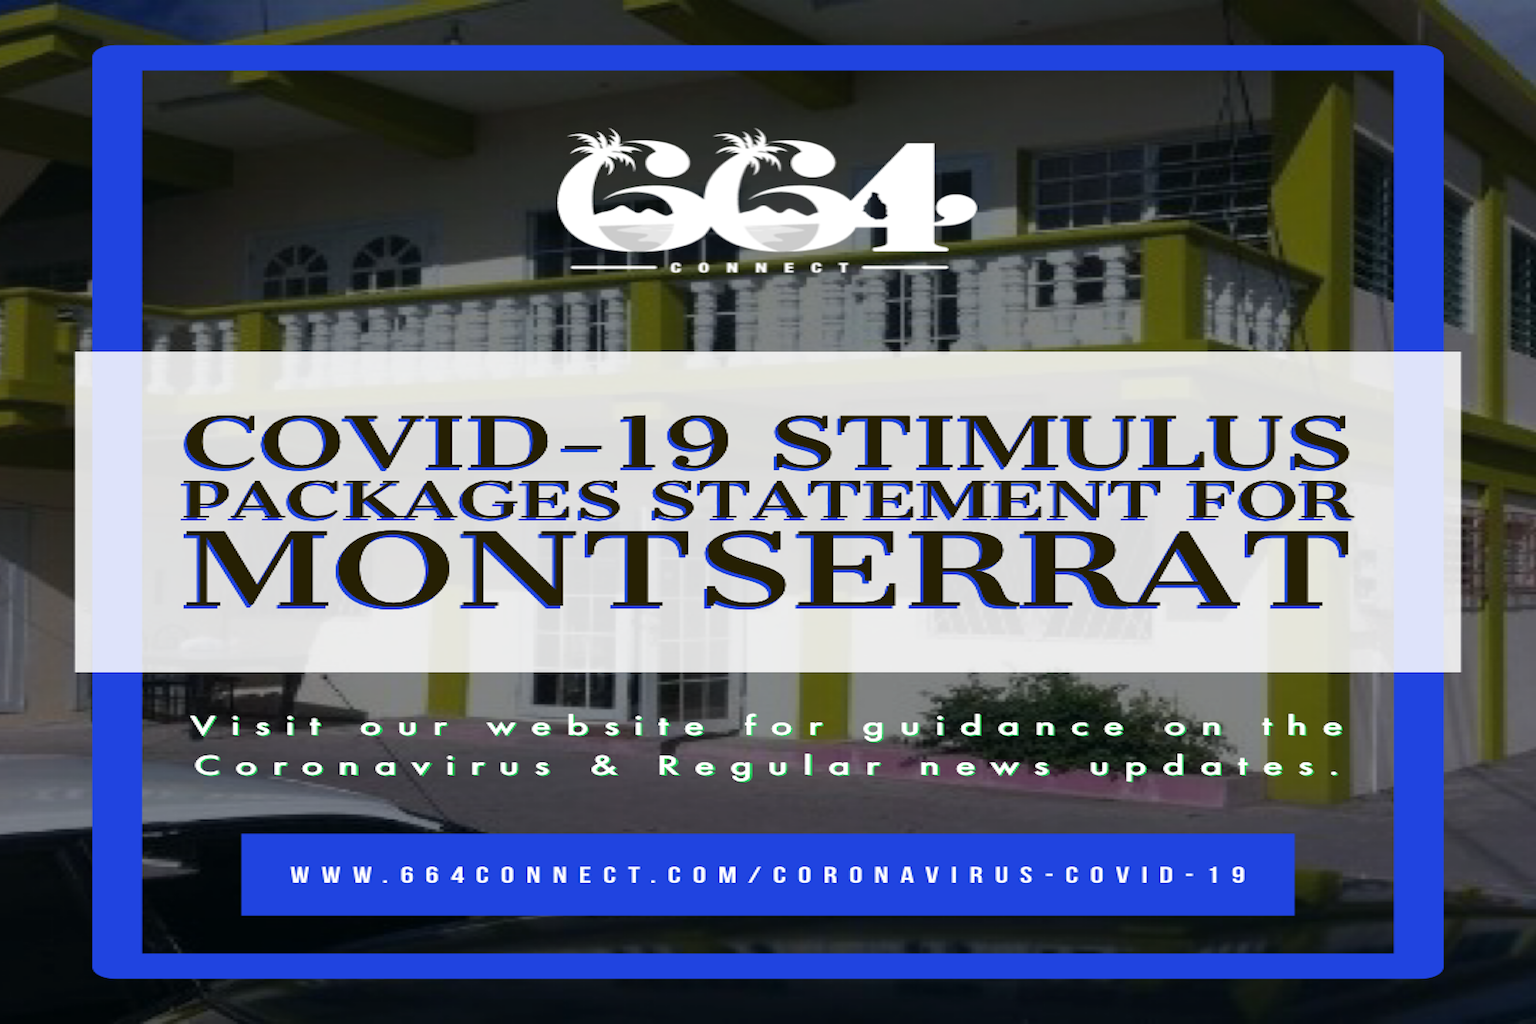 COVID-19 Stimulus Packages Statement for Montserrat, Montserrat Financial Aid, Montserrat Medical Supplies